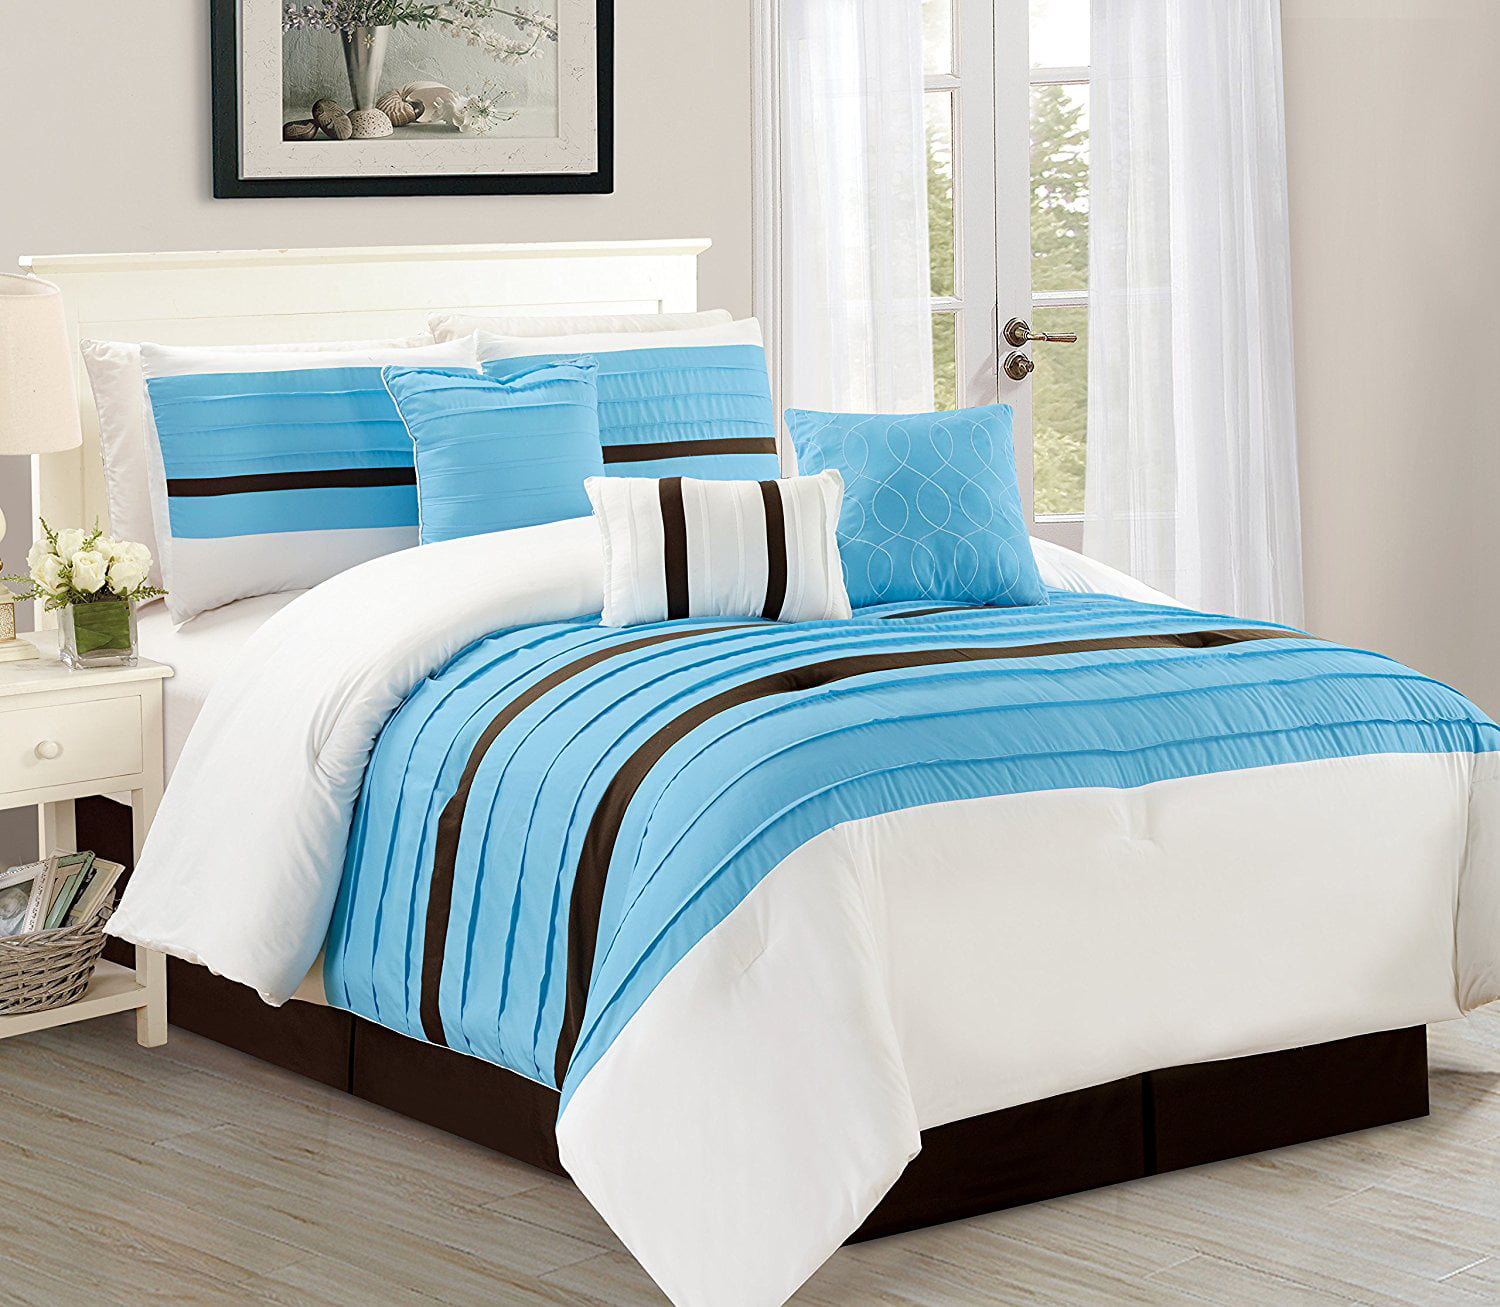 California King Bed Comforter Sets